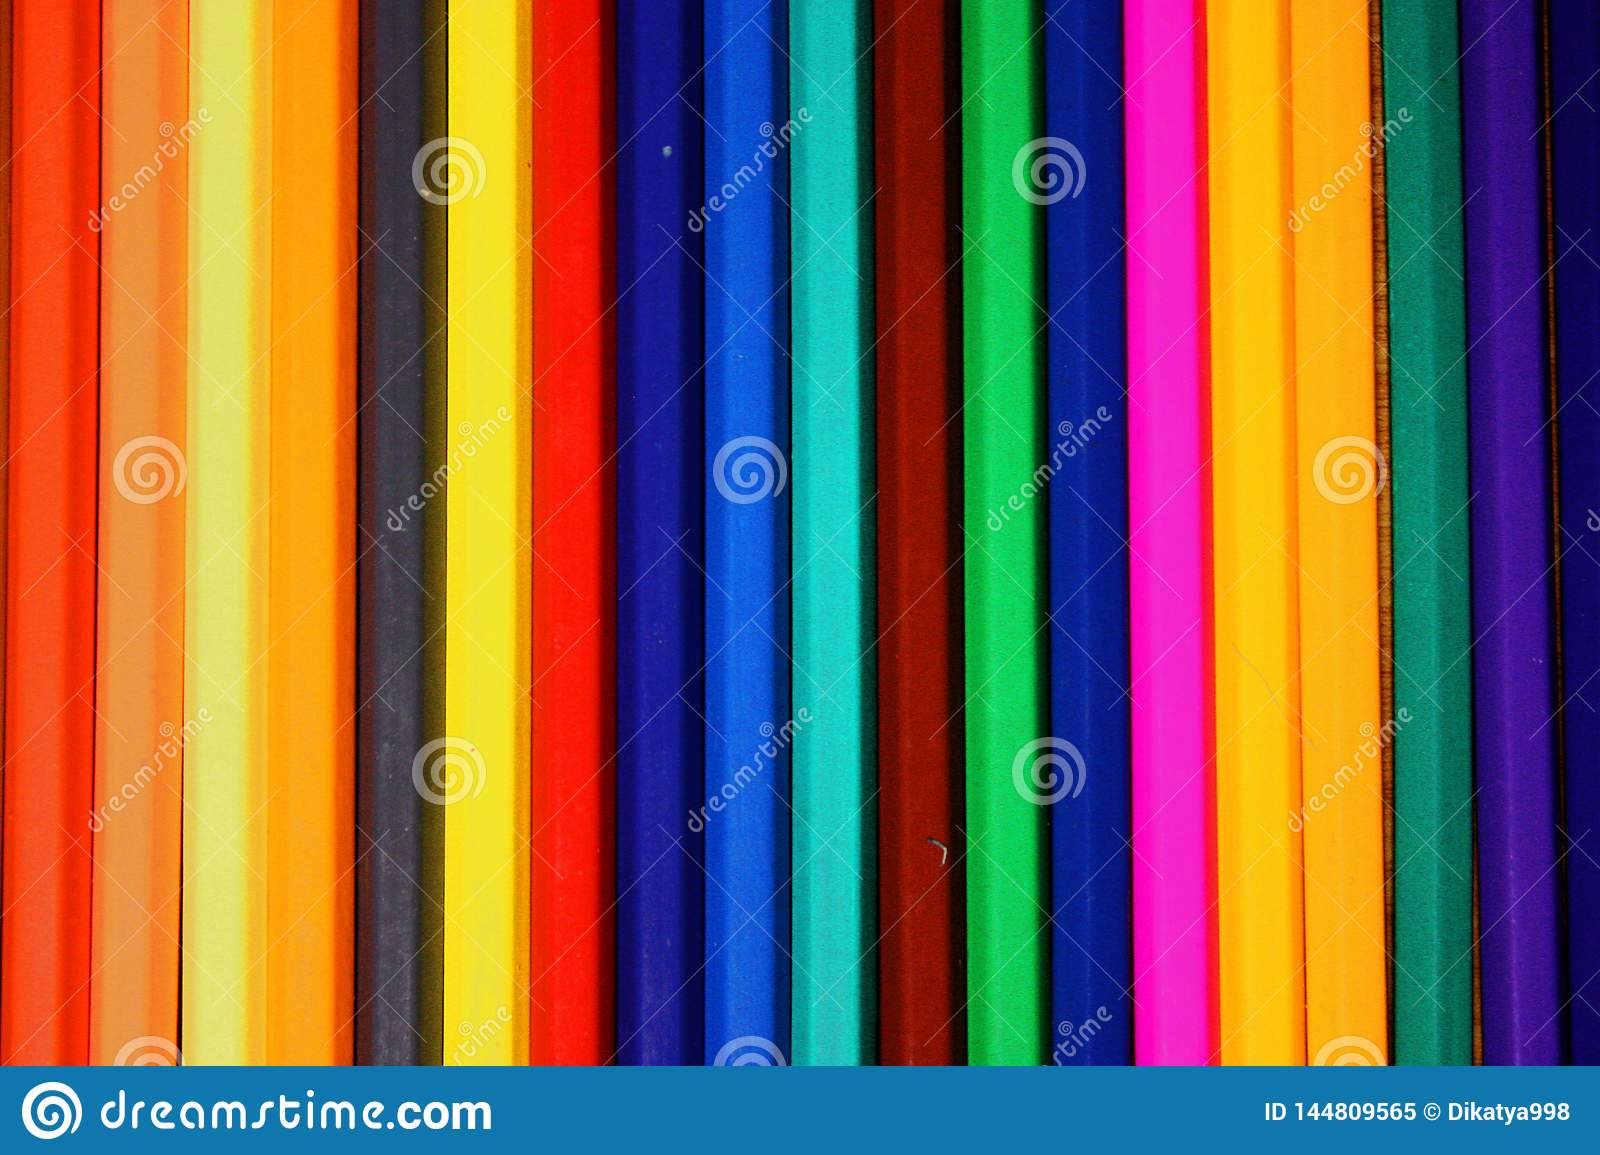 Colored Pencils Row Background / Texture Stock Image ...